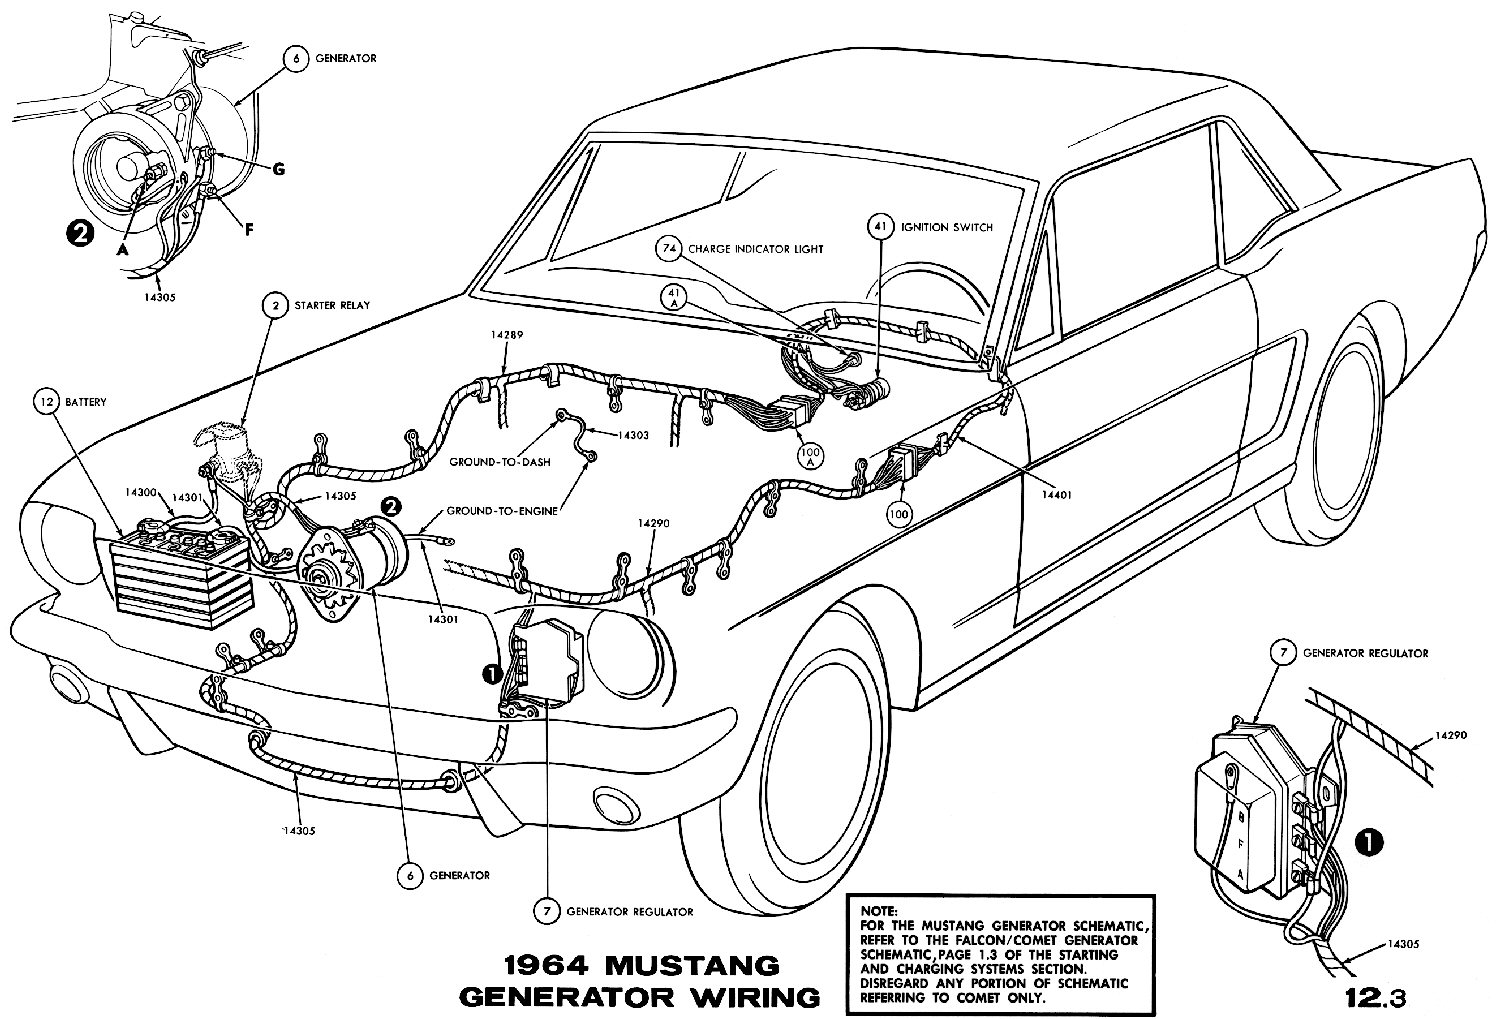 1964 Mustang Wiring Diagrams Average Joe Restoration Falcon 90 Diagram Sm1964f Generator Pictorial Or Schematic